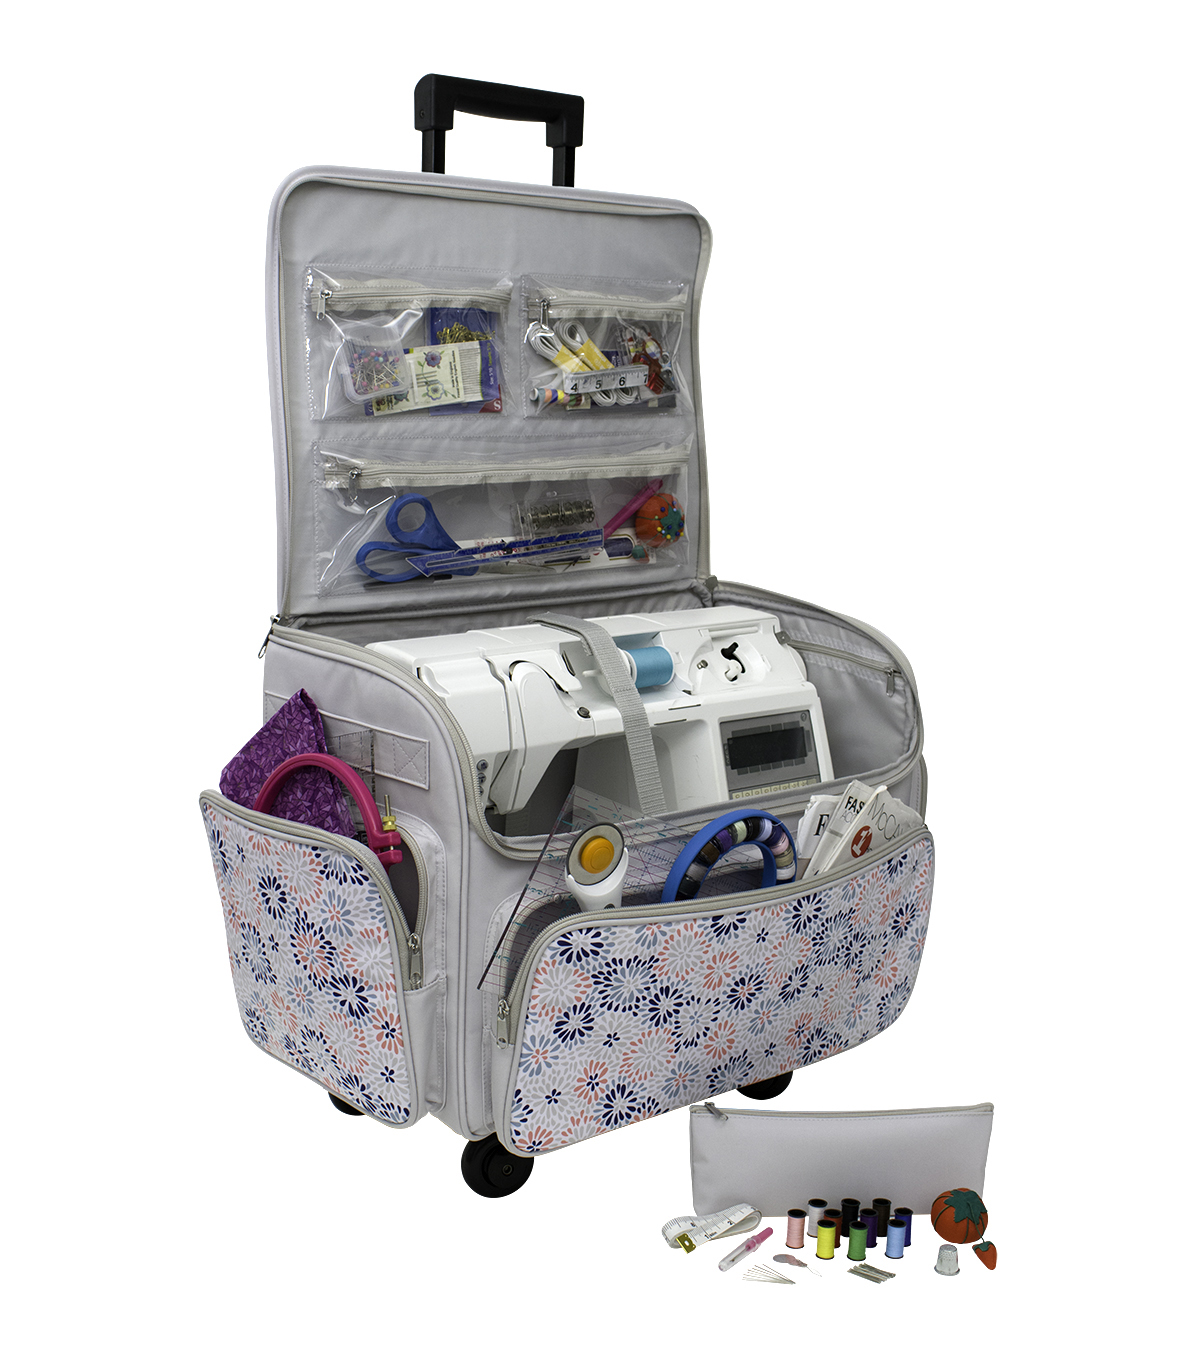 Sewing Room On Wheels with Bonus Set-Floral